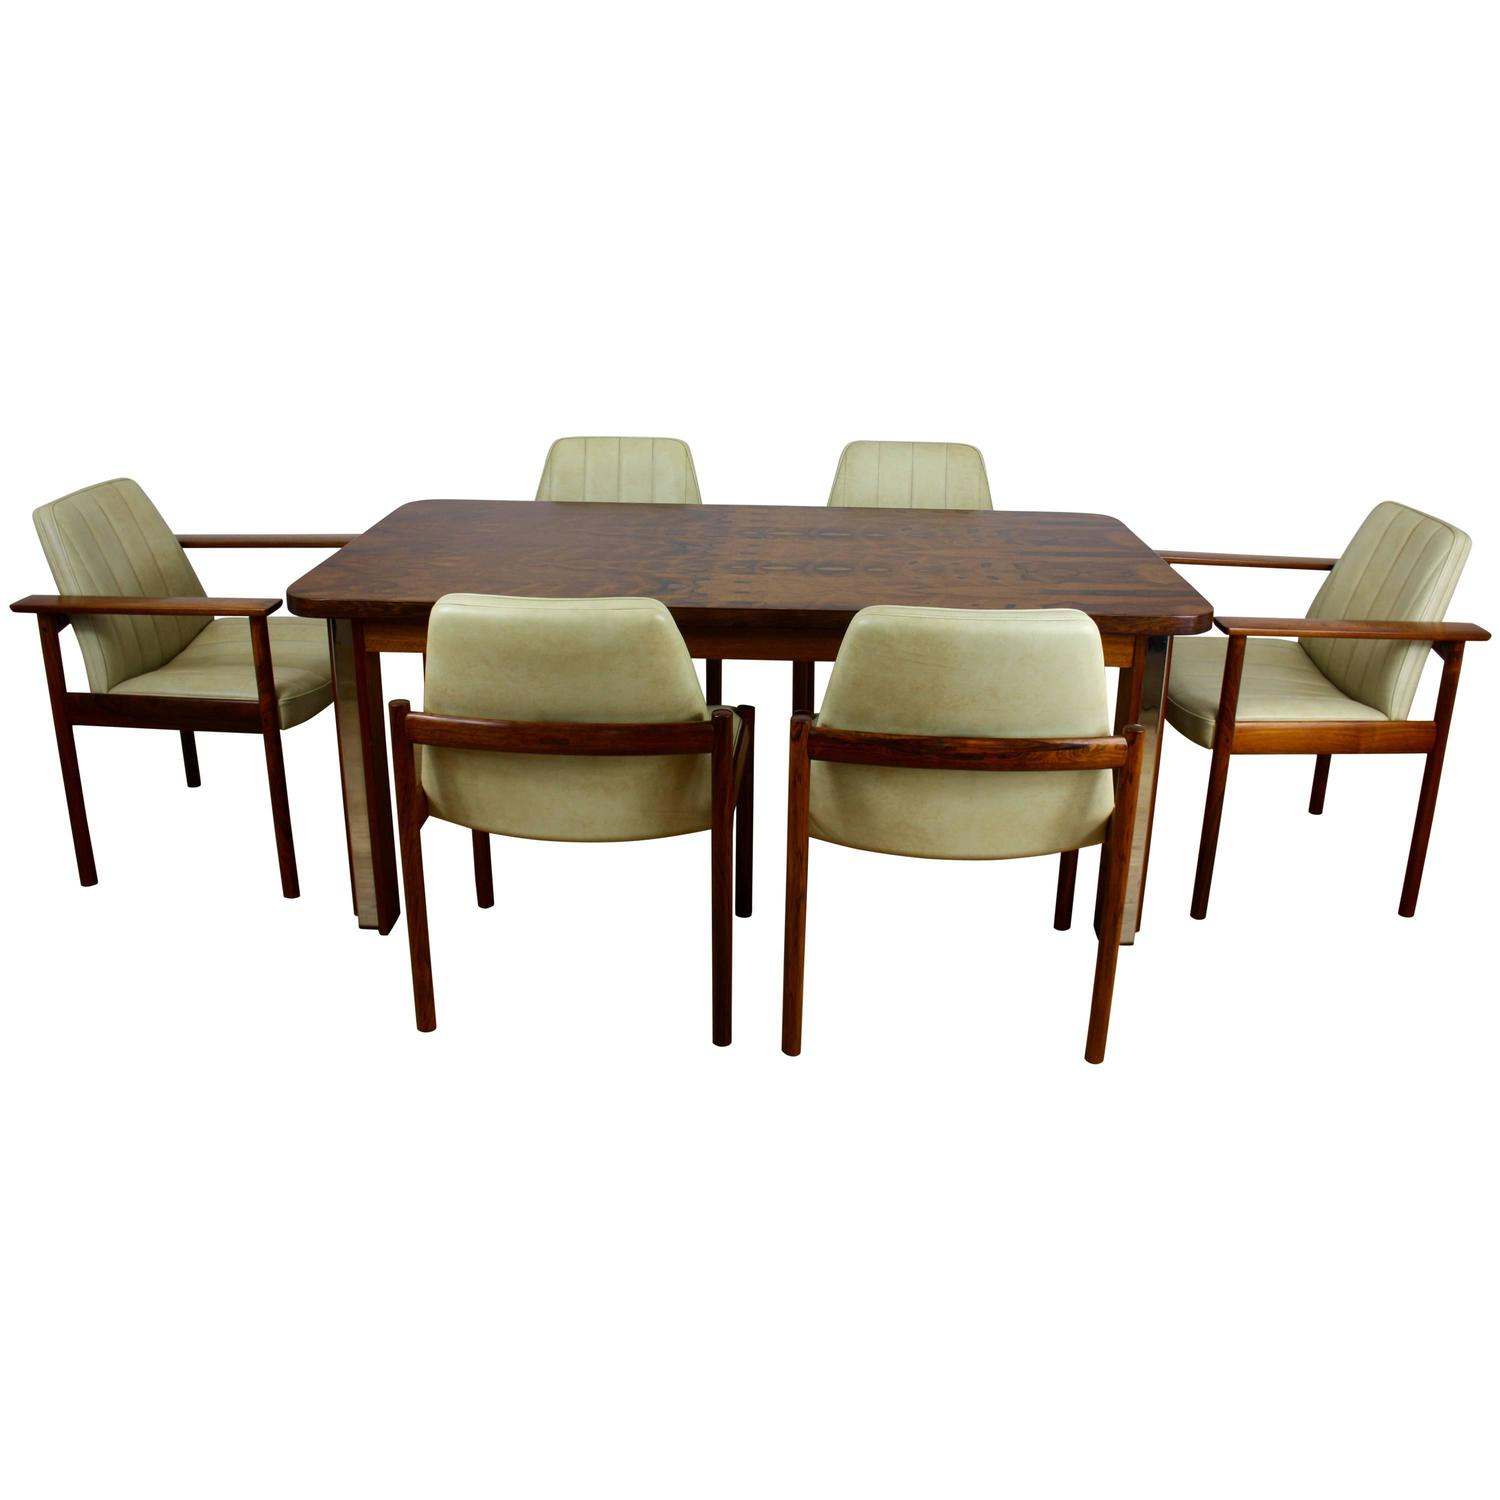 MID TWENTIETH CENTURY DESIGN ROSEWOOD DINING TABLE And CHAIRS For Sale